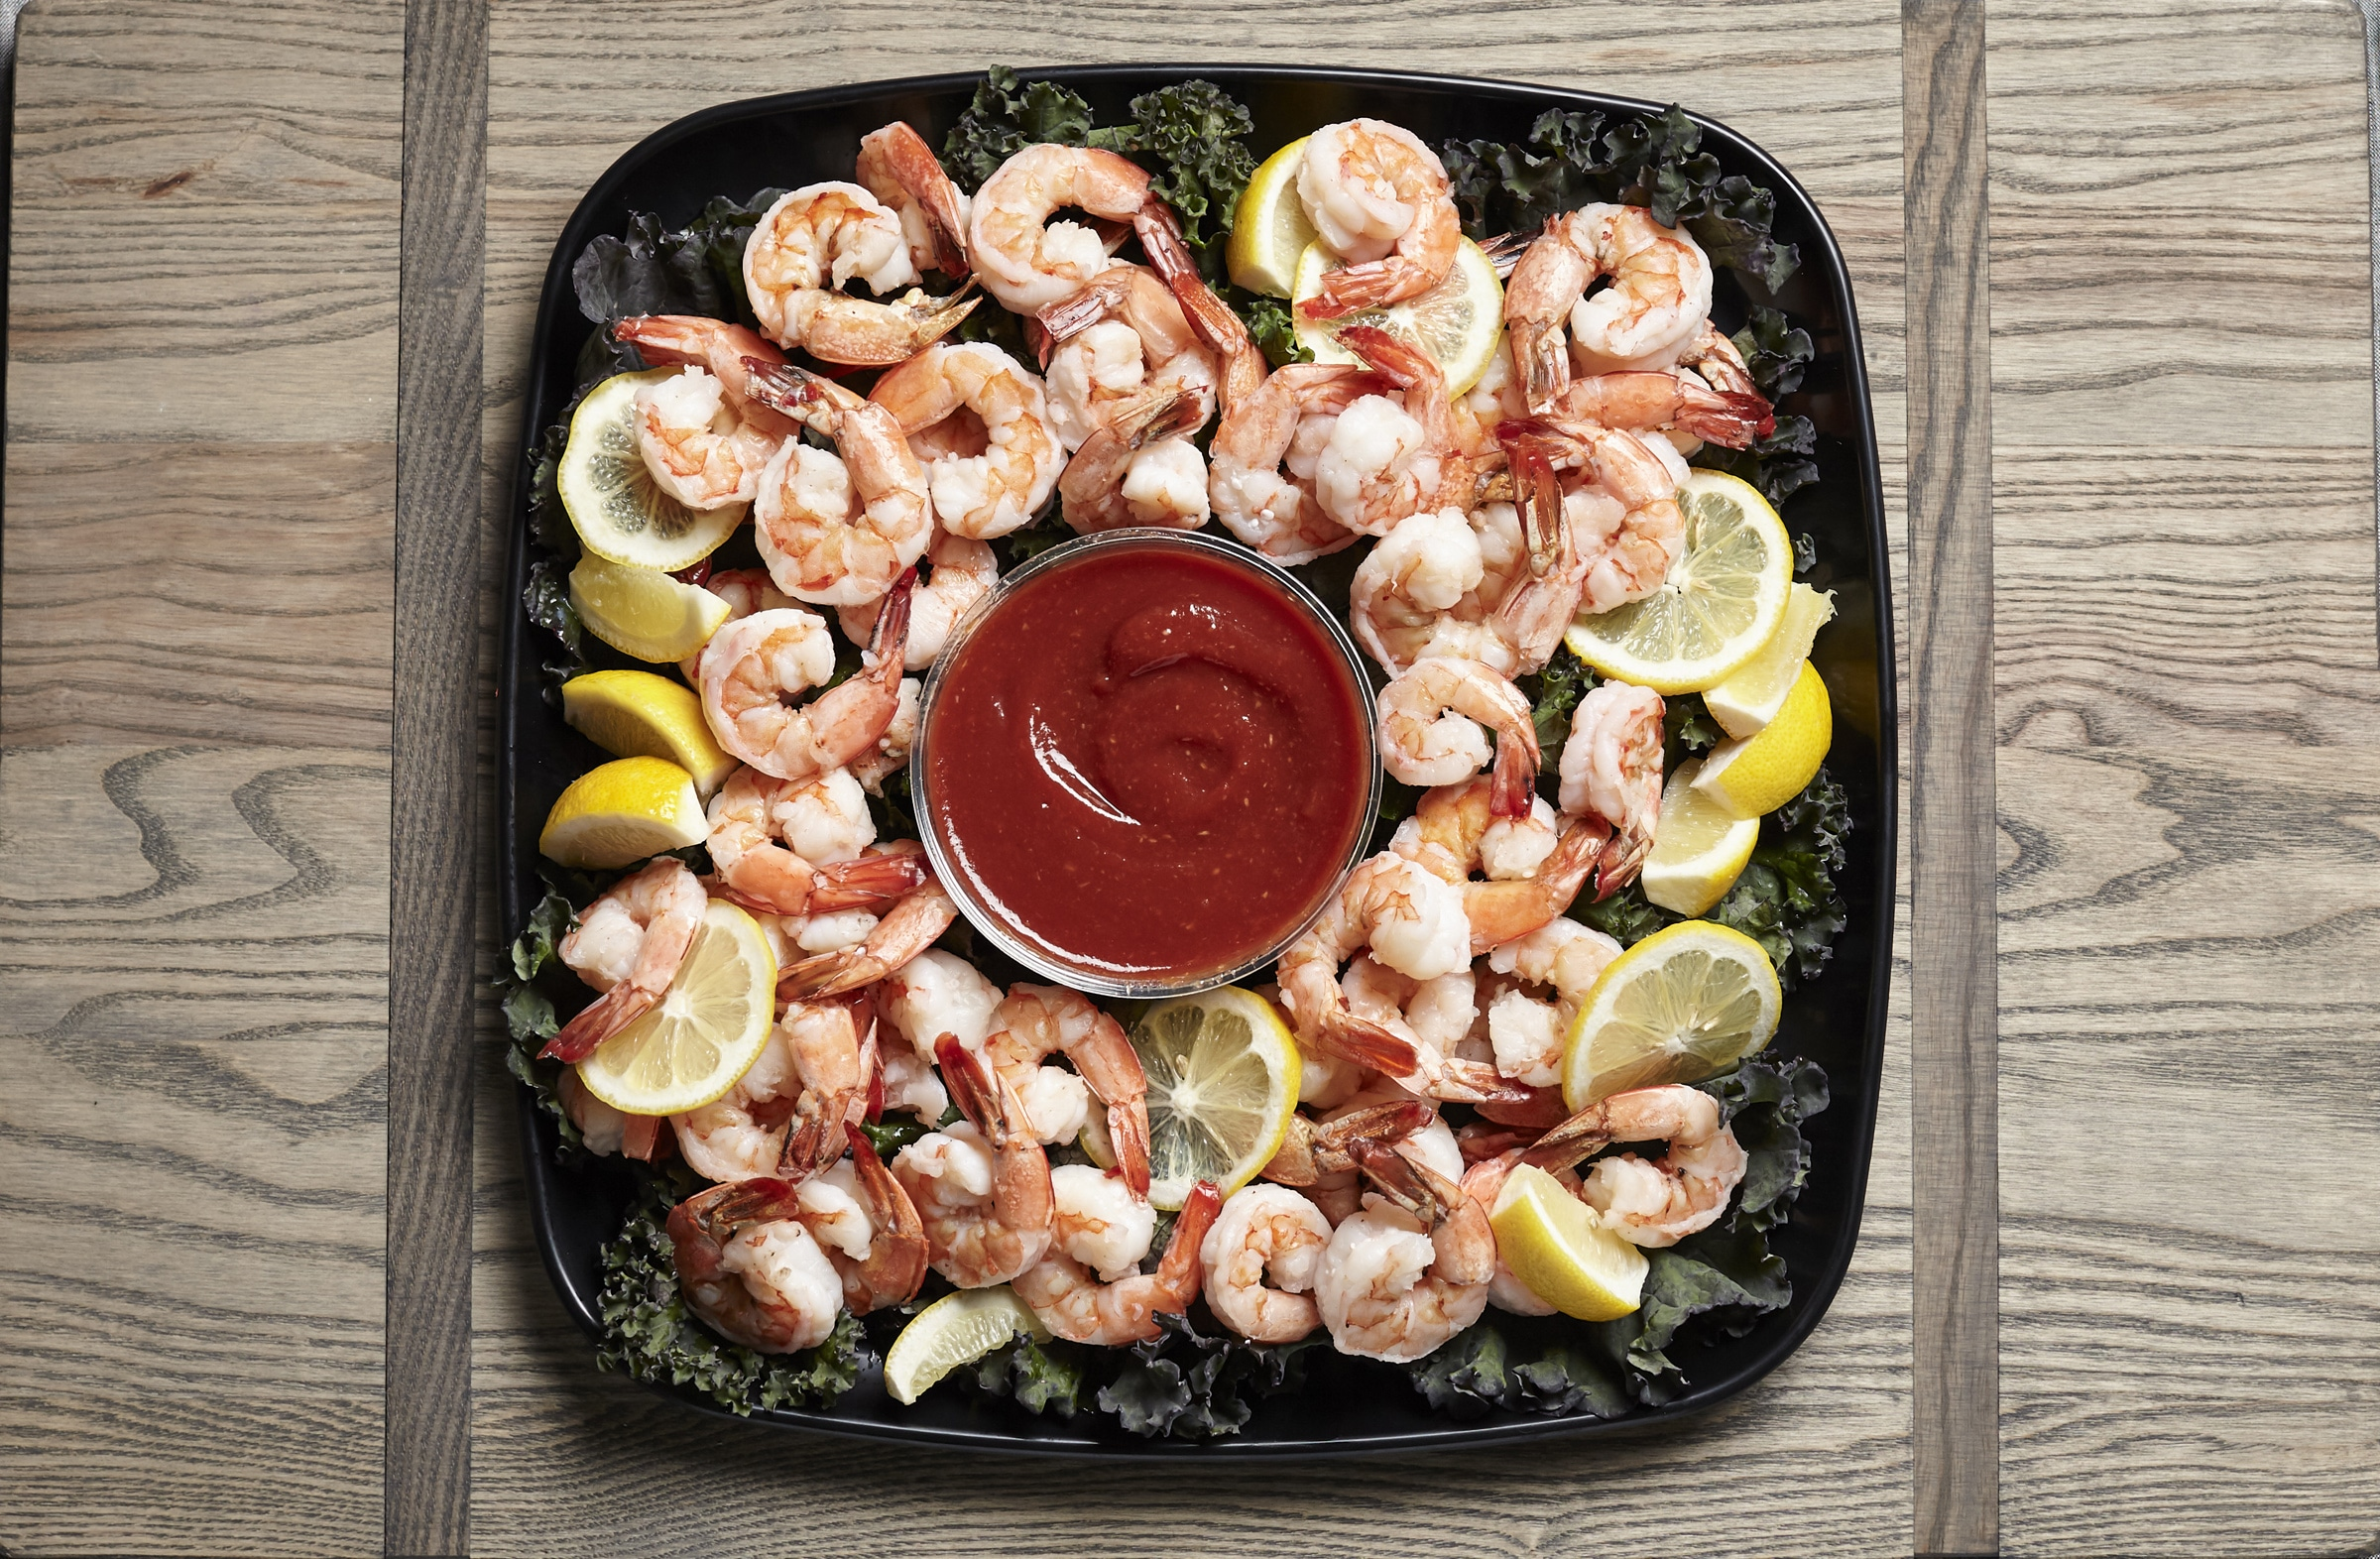 cocktail shrimp catering tray from Zupans